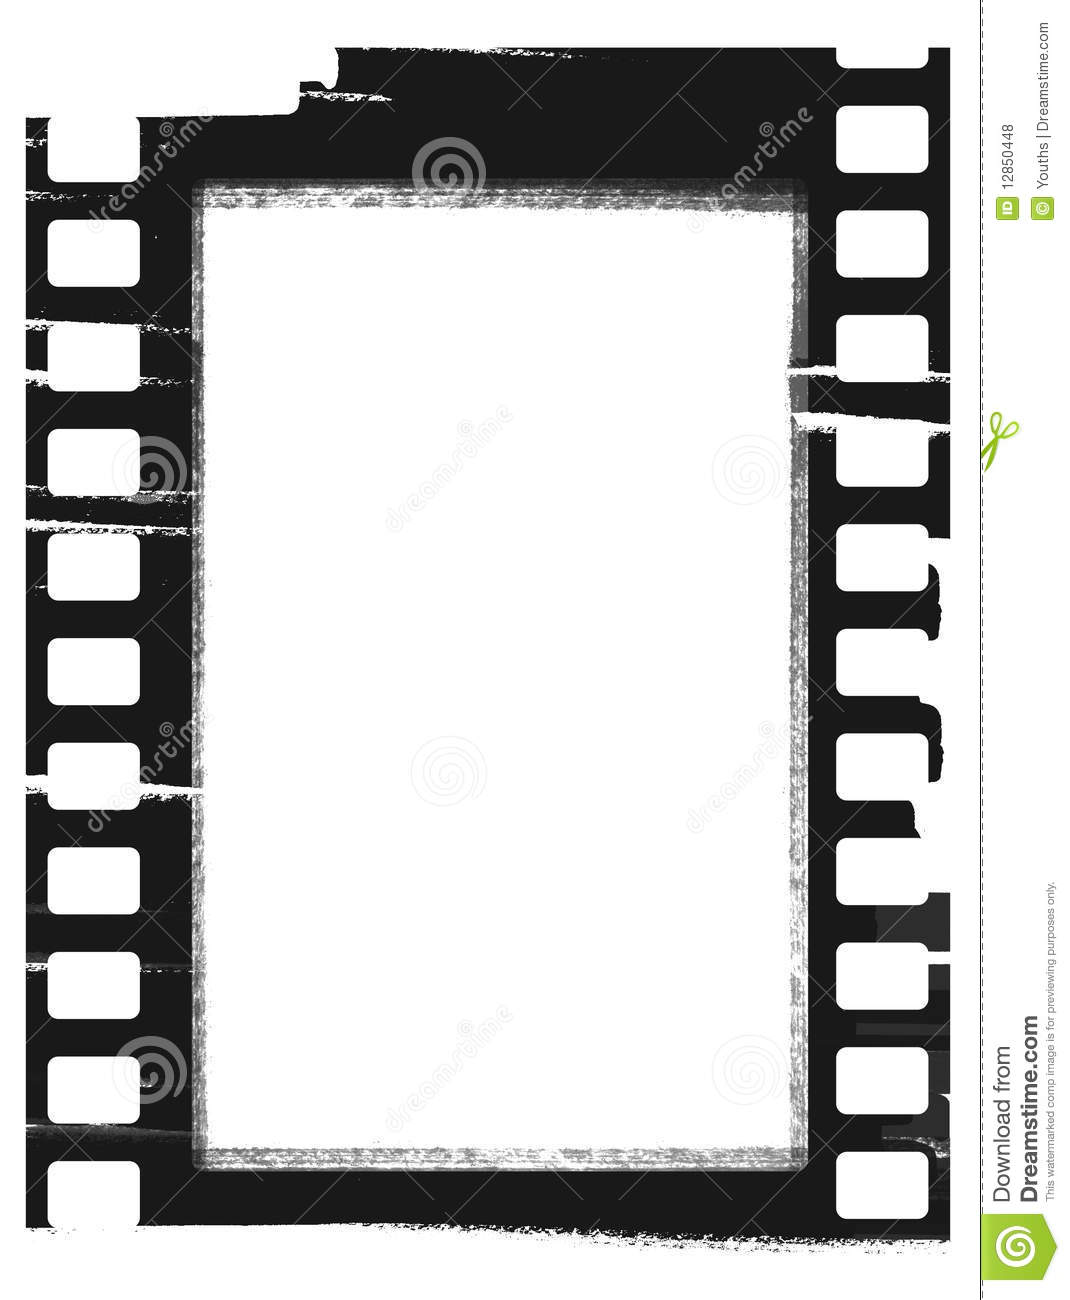 film strip picture template - frame of film vector stock vector illustration of